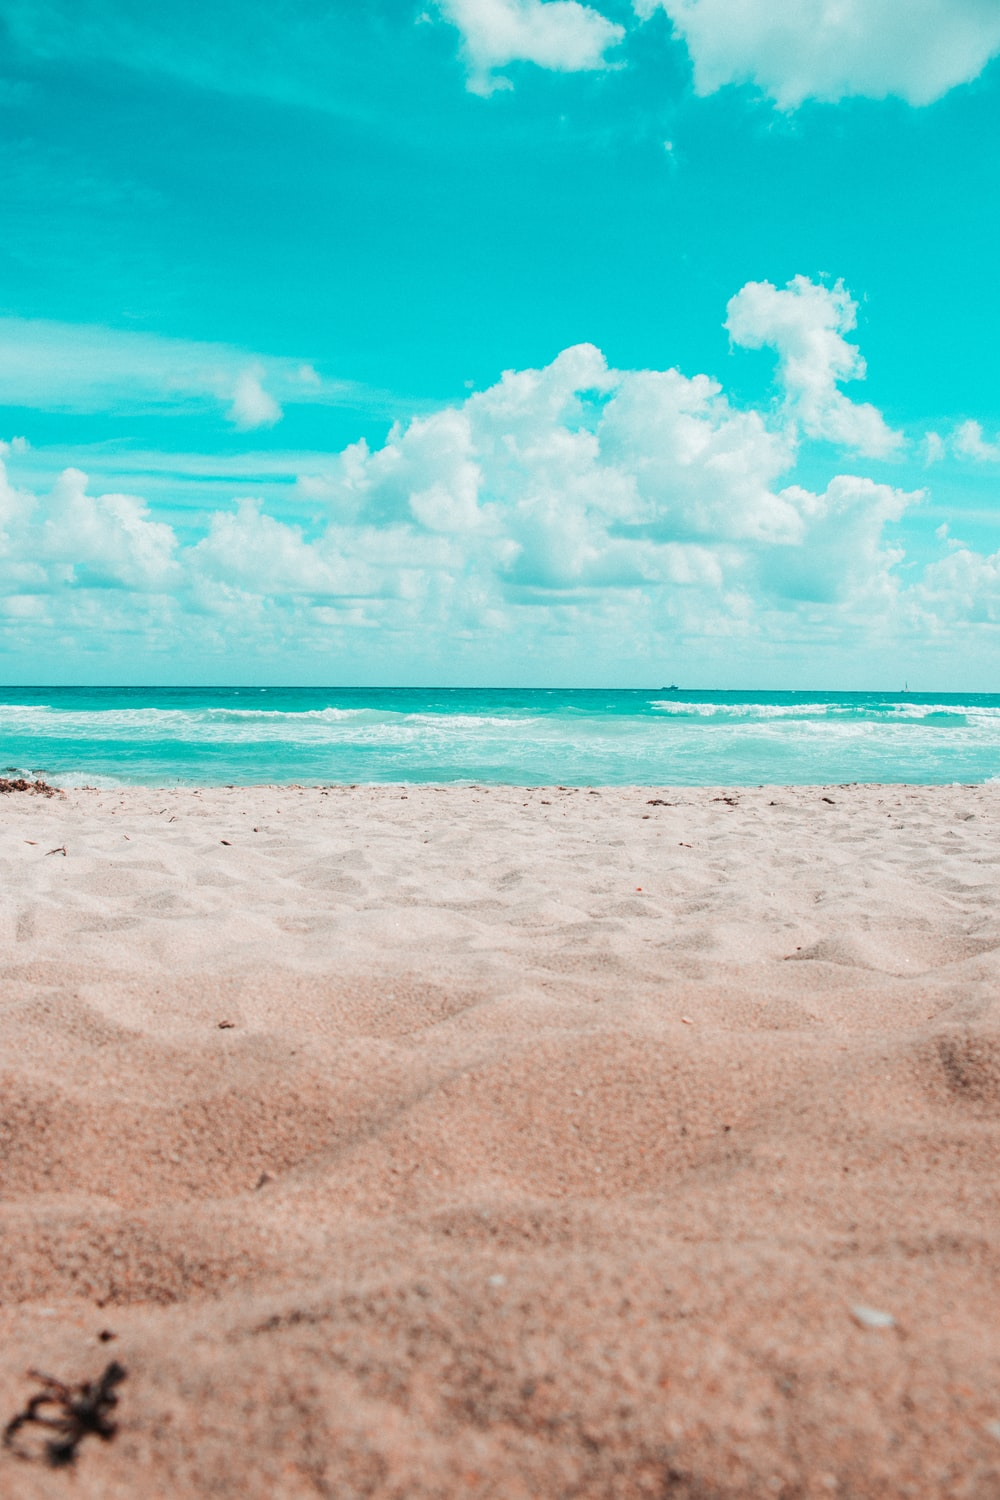 beach under blue sky and white clouds during daytime